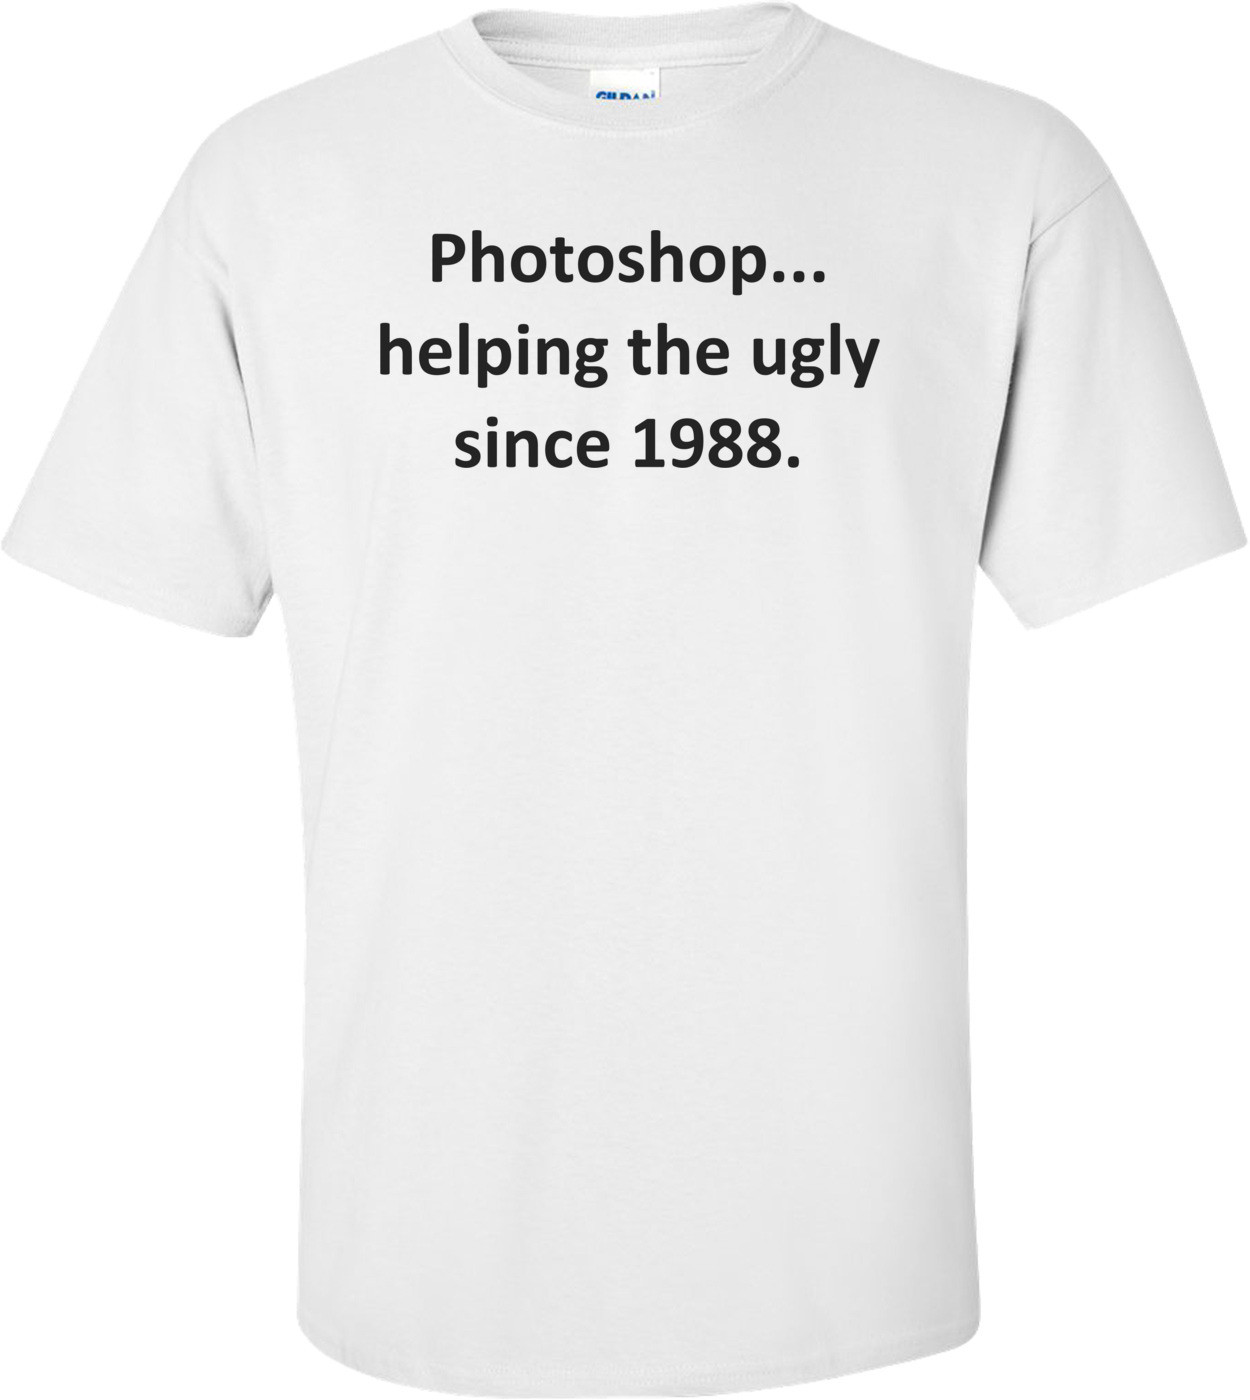 Photoshop... helping the ugly since 1988. Shirt